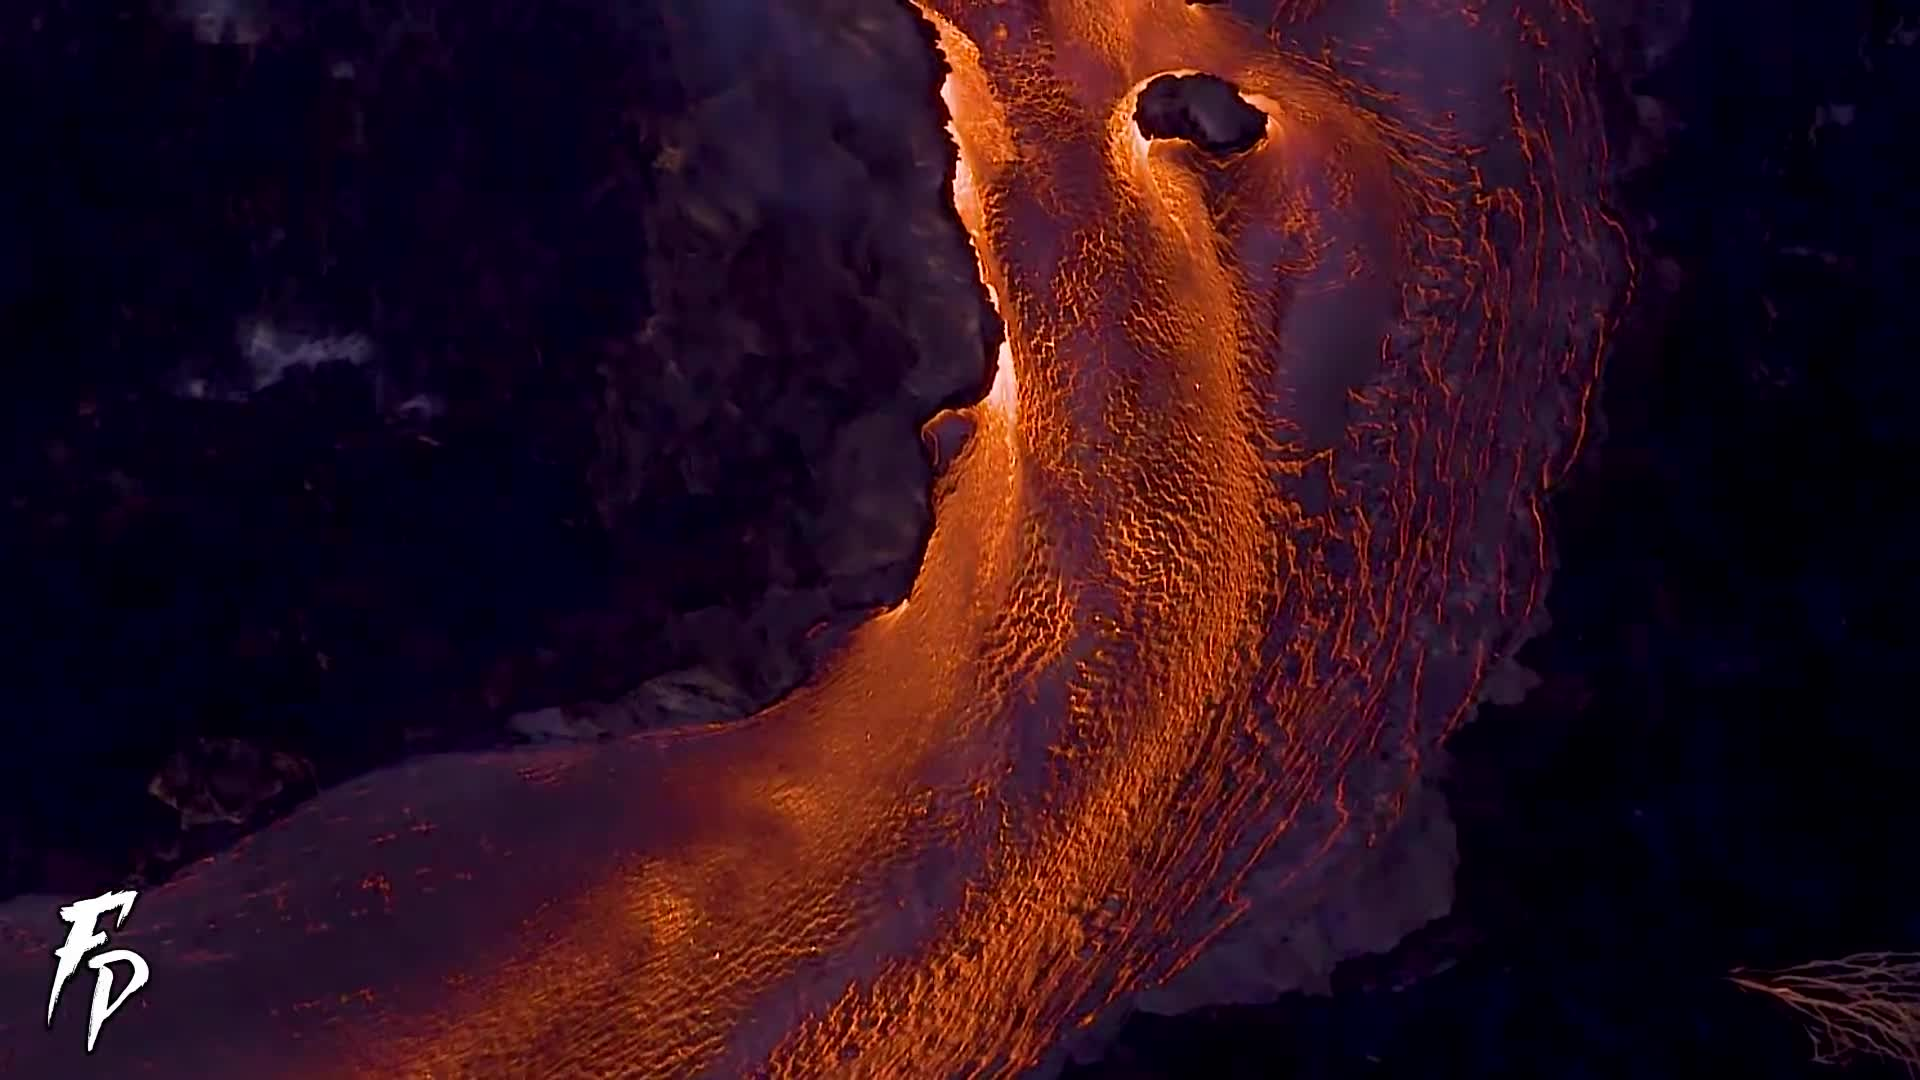 Aerial footage of eruption in Hawaii 2018, Fissure 8, Lava does non stop, fobos planet, hawaii, hawaii volcano, lava, lava flow, lava flowing into the ocean, volcano, Lava does NON STOP! Aerial footage of eruption in Hawaii 2018 GIFs